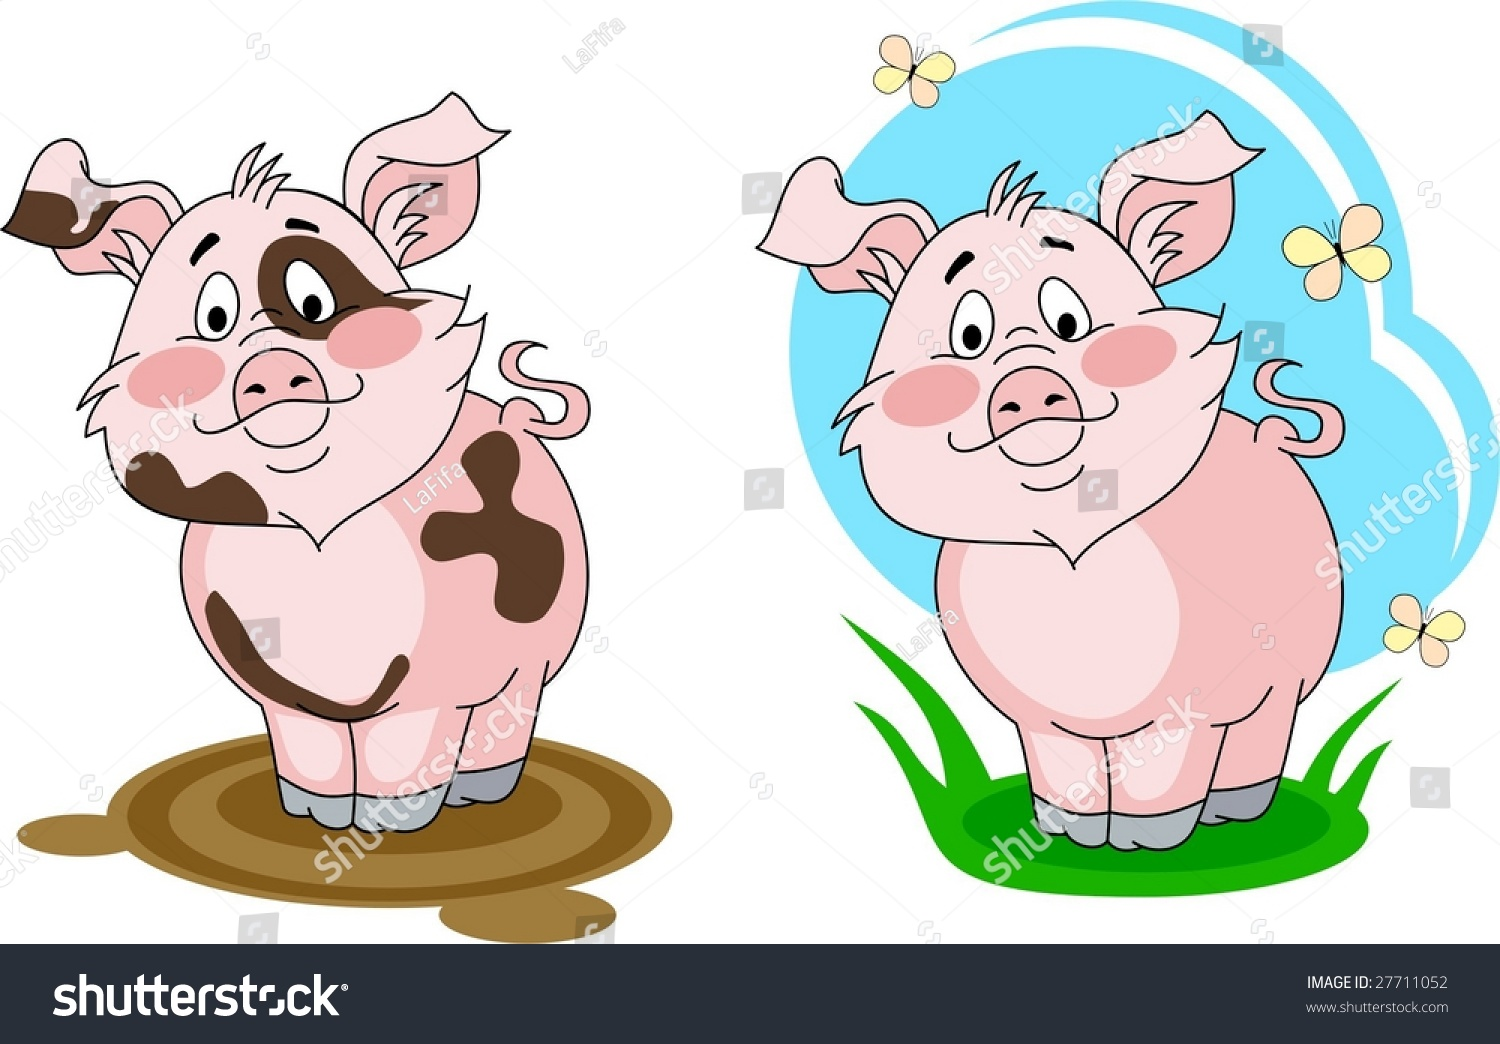 Dirty pigling and clean pigling stock vector illustration 27711052